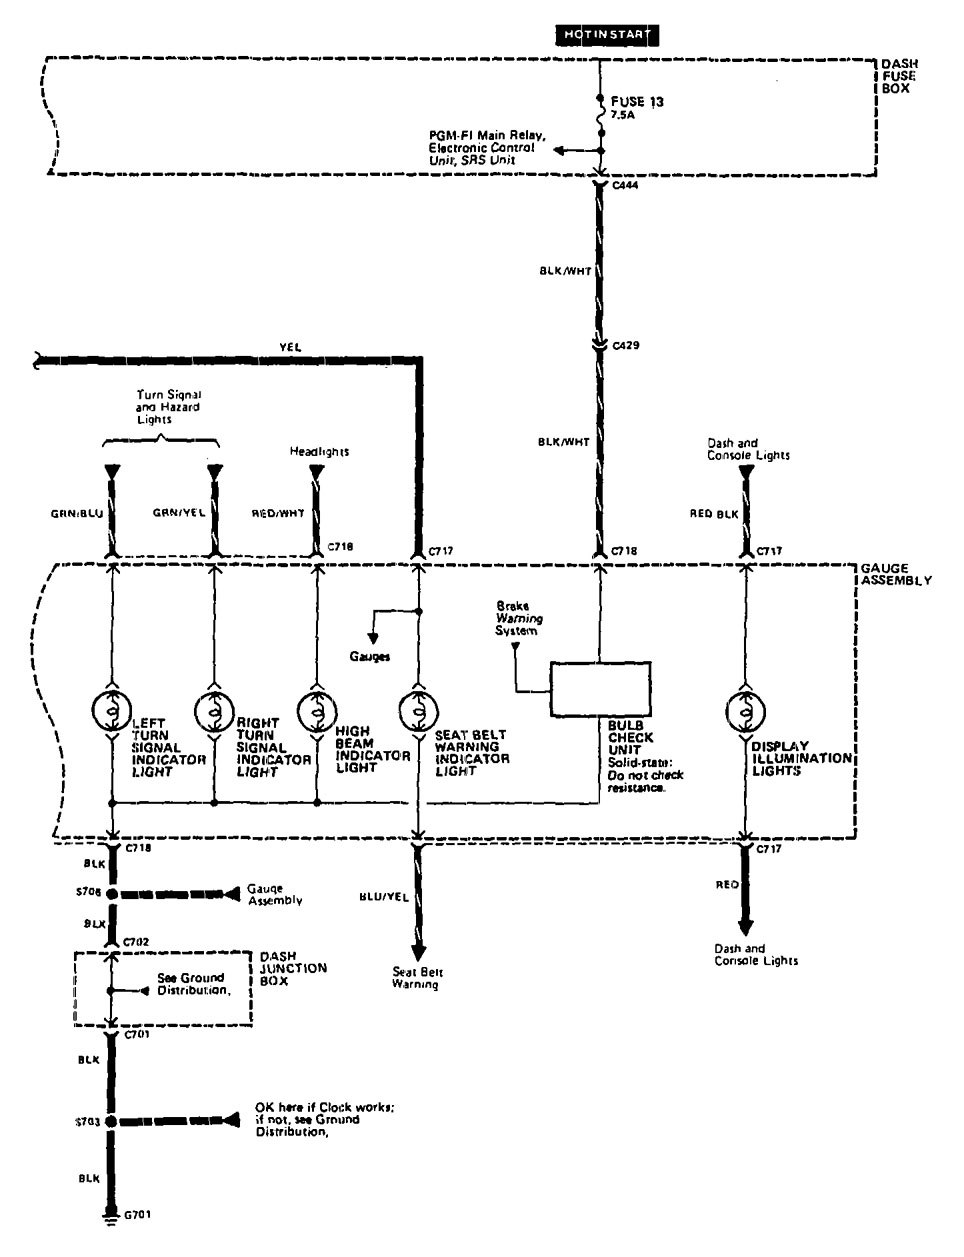 Dol Wiring Diagram With Lamp Indicators Auto Electrical Pro T721 Thermostat Related